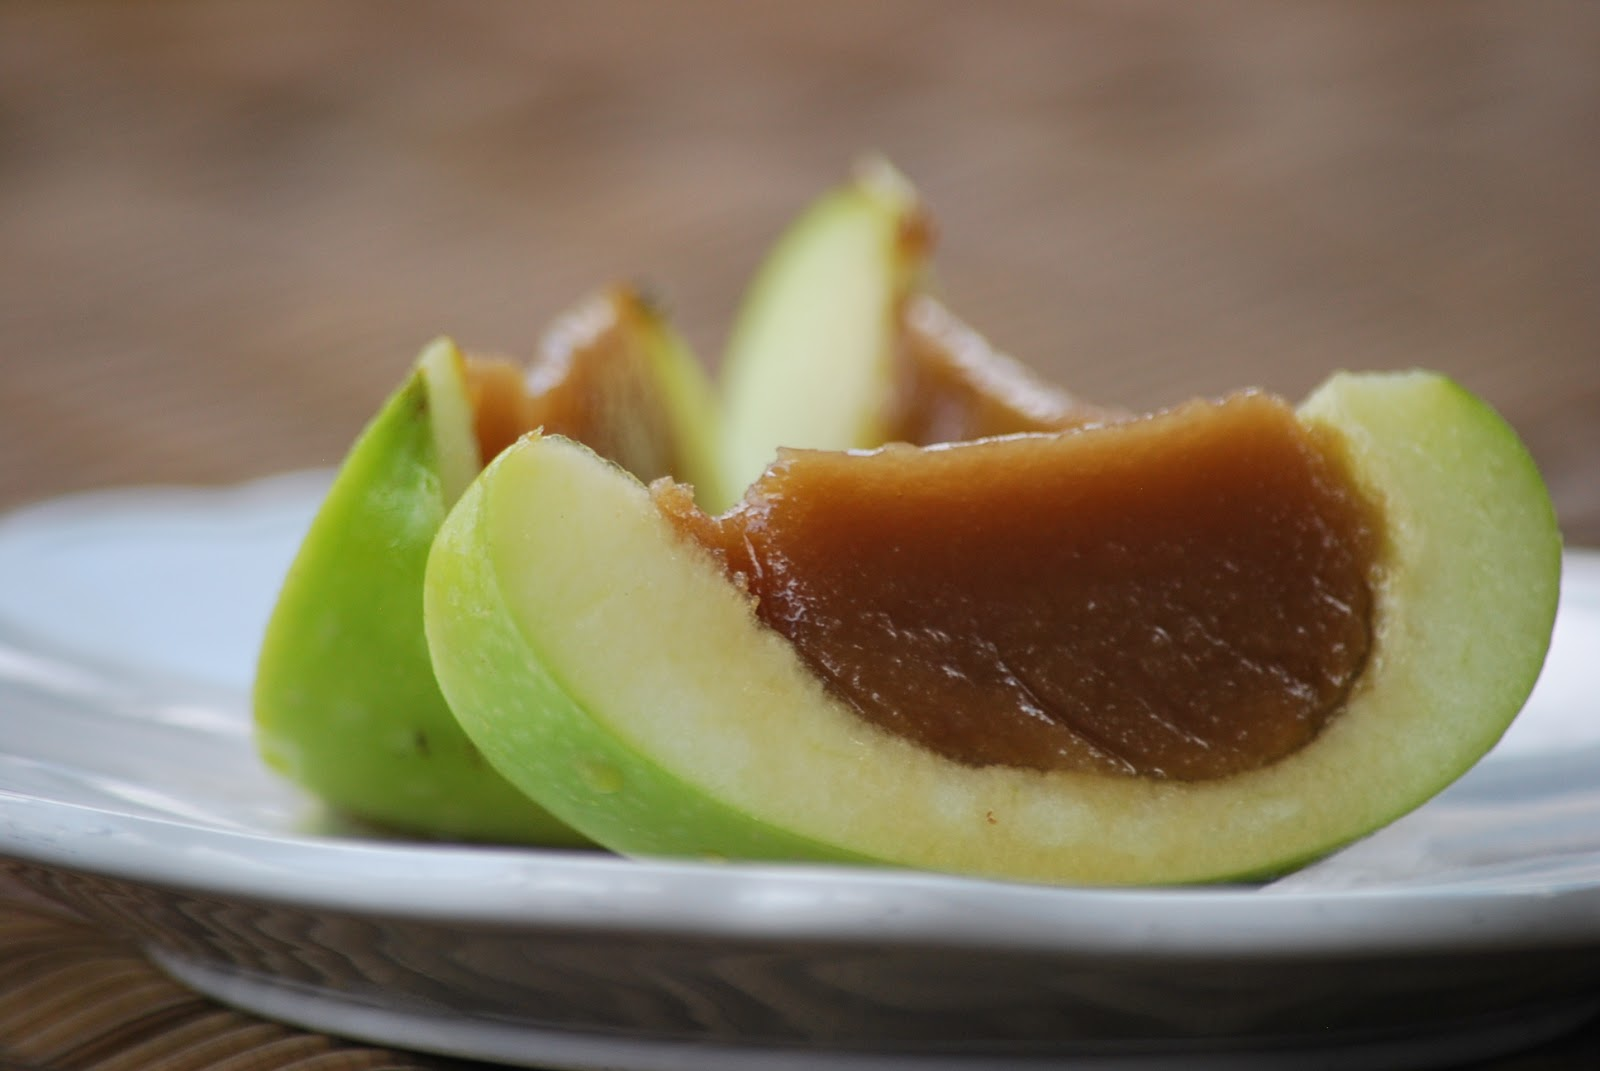 My story in recipes: Caramel Apple Bites